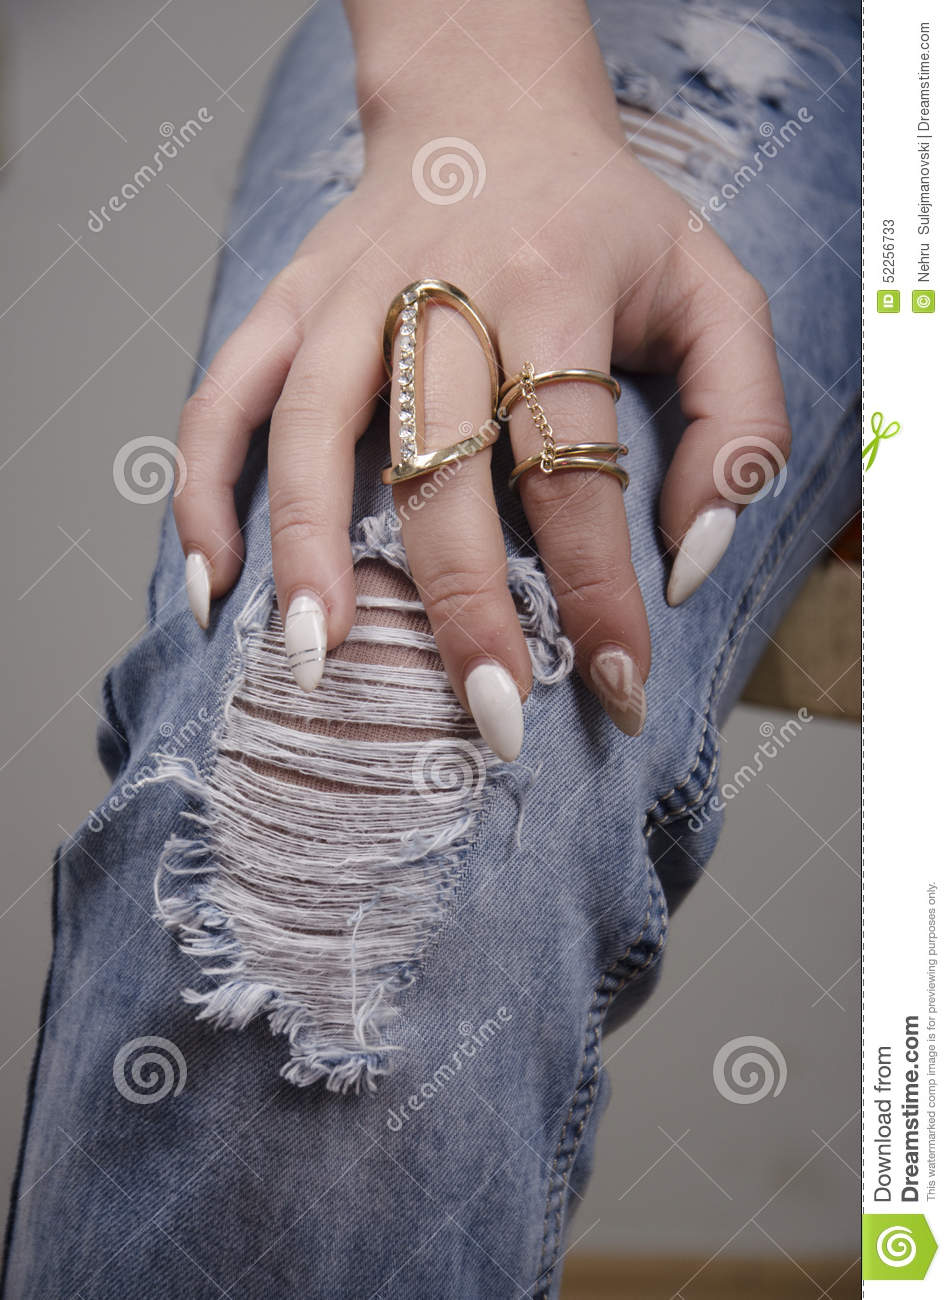 Hand Of A Girl With Gold Rings Stock Image - Image of gems, golden ...